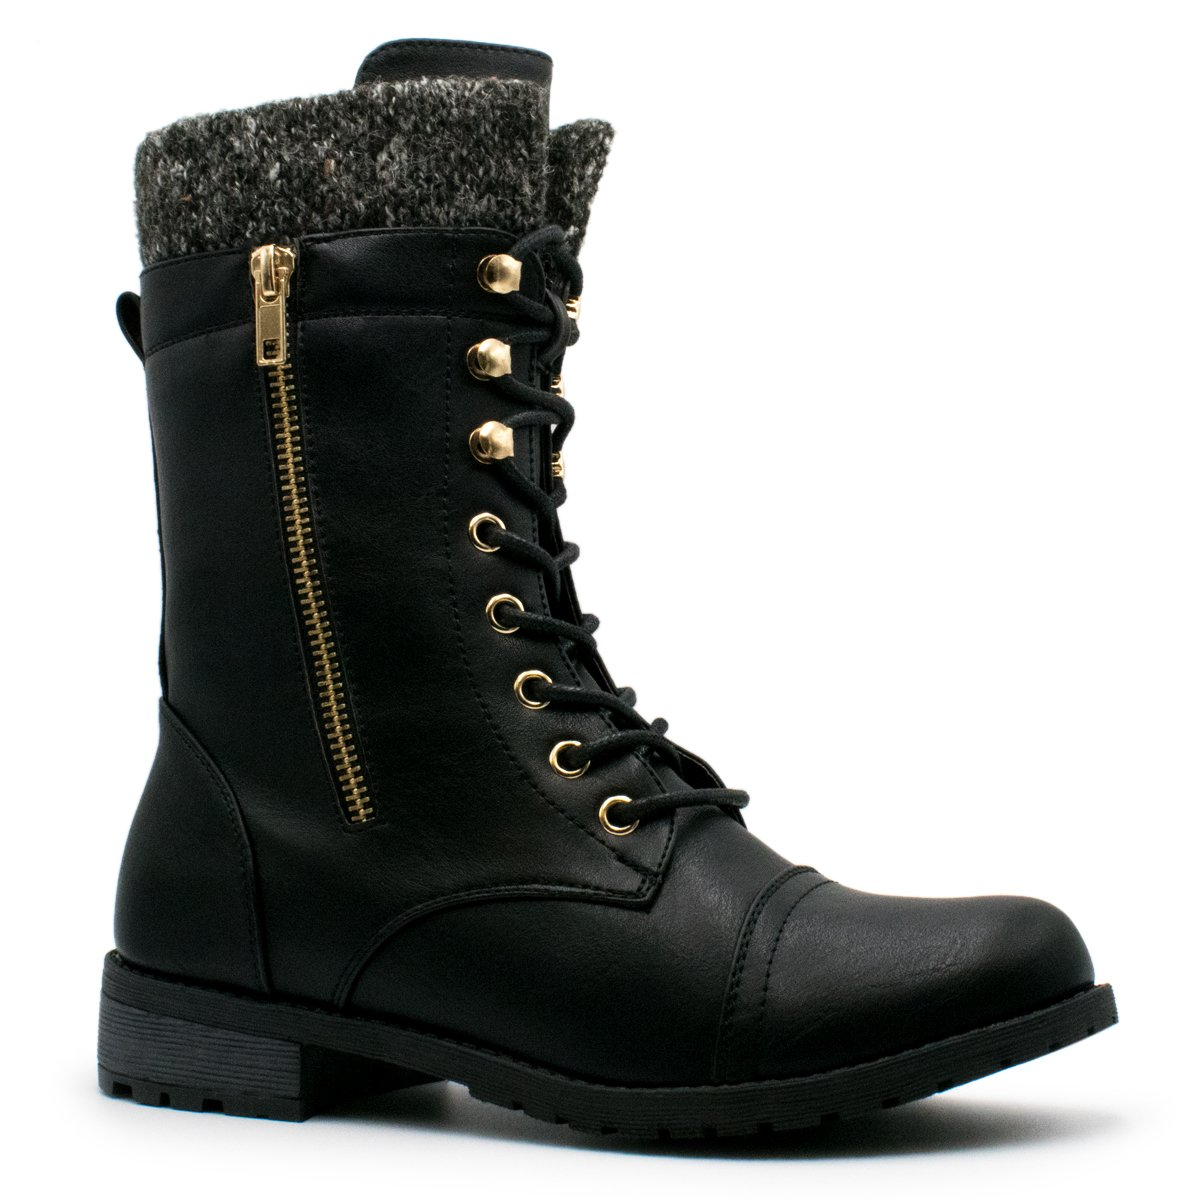 Premier Standard - Round Toe Military Lace up Knitted Ankle Cuff Low Heel Combat Boots, TPS Mango-31 v2 Black Size 8.5